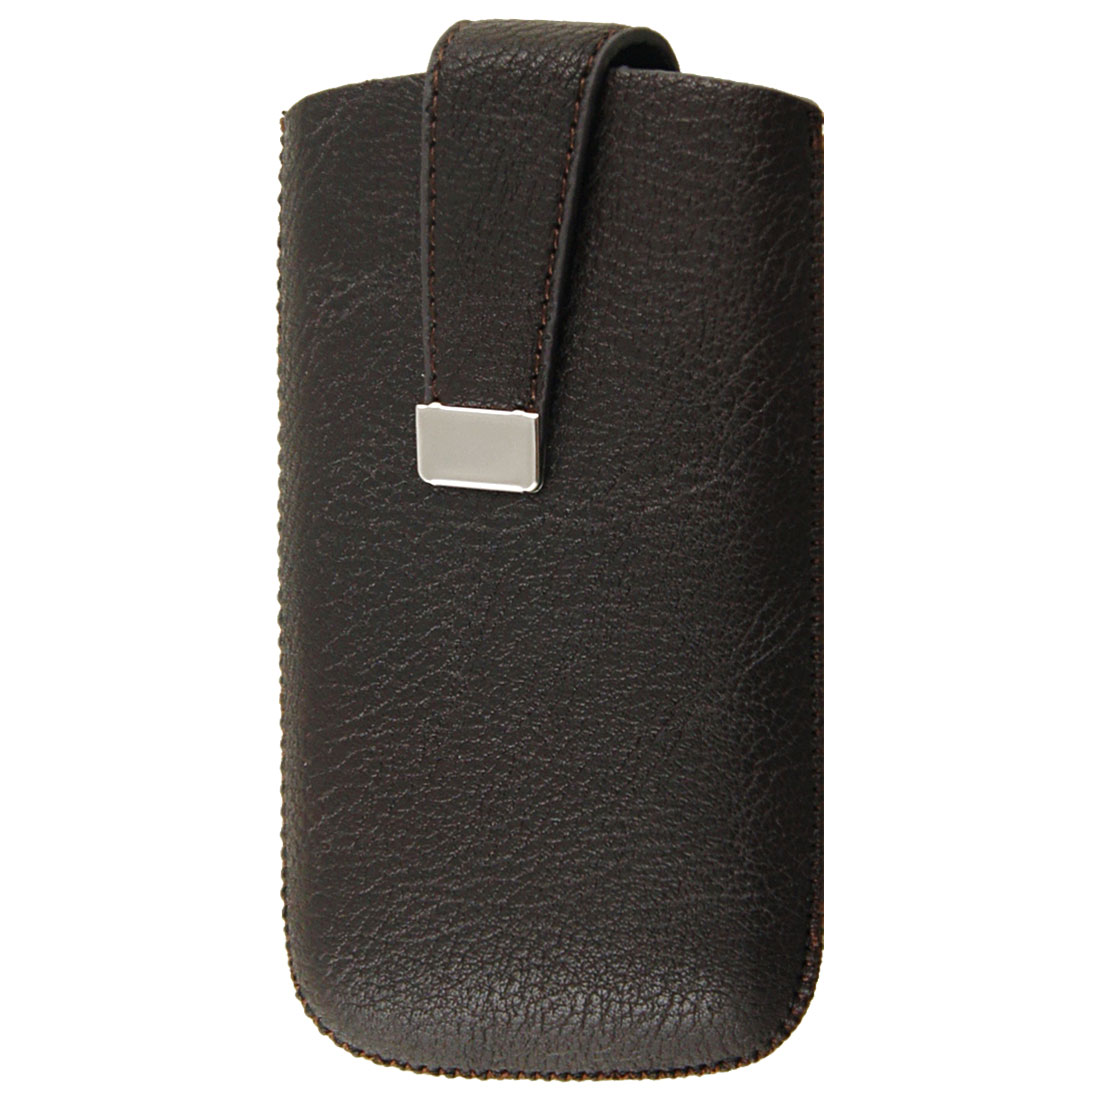 Vertical Coffee Color Faux Leather Magnetic Flip Pull Up Pouch for iPhone 4 4G 4S